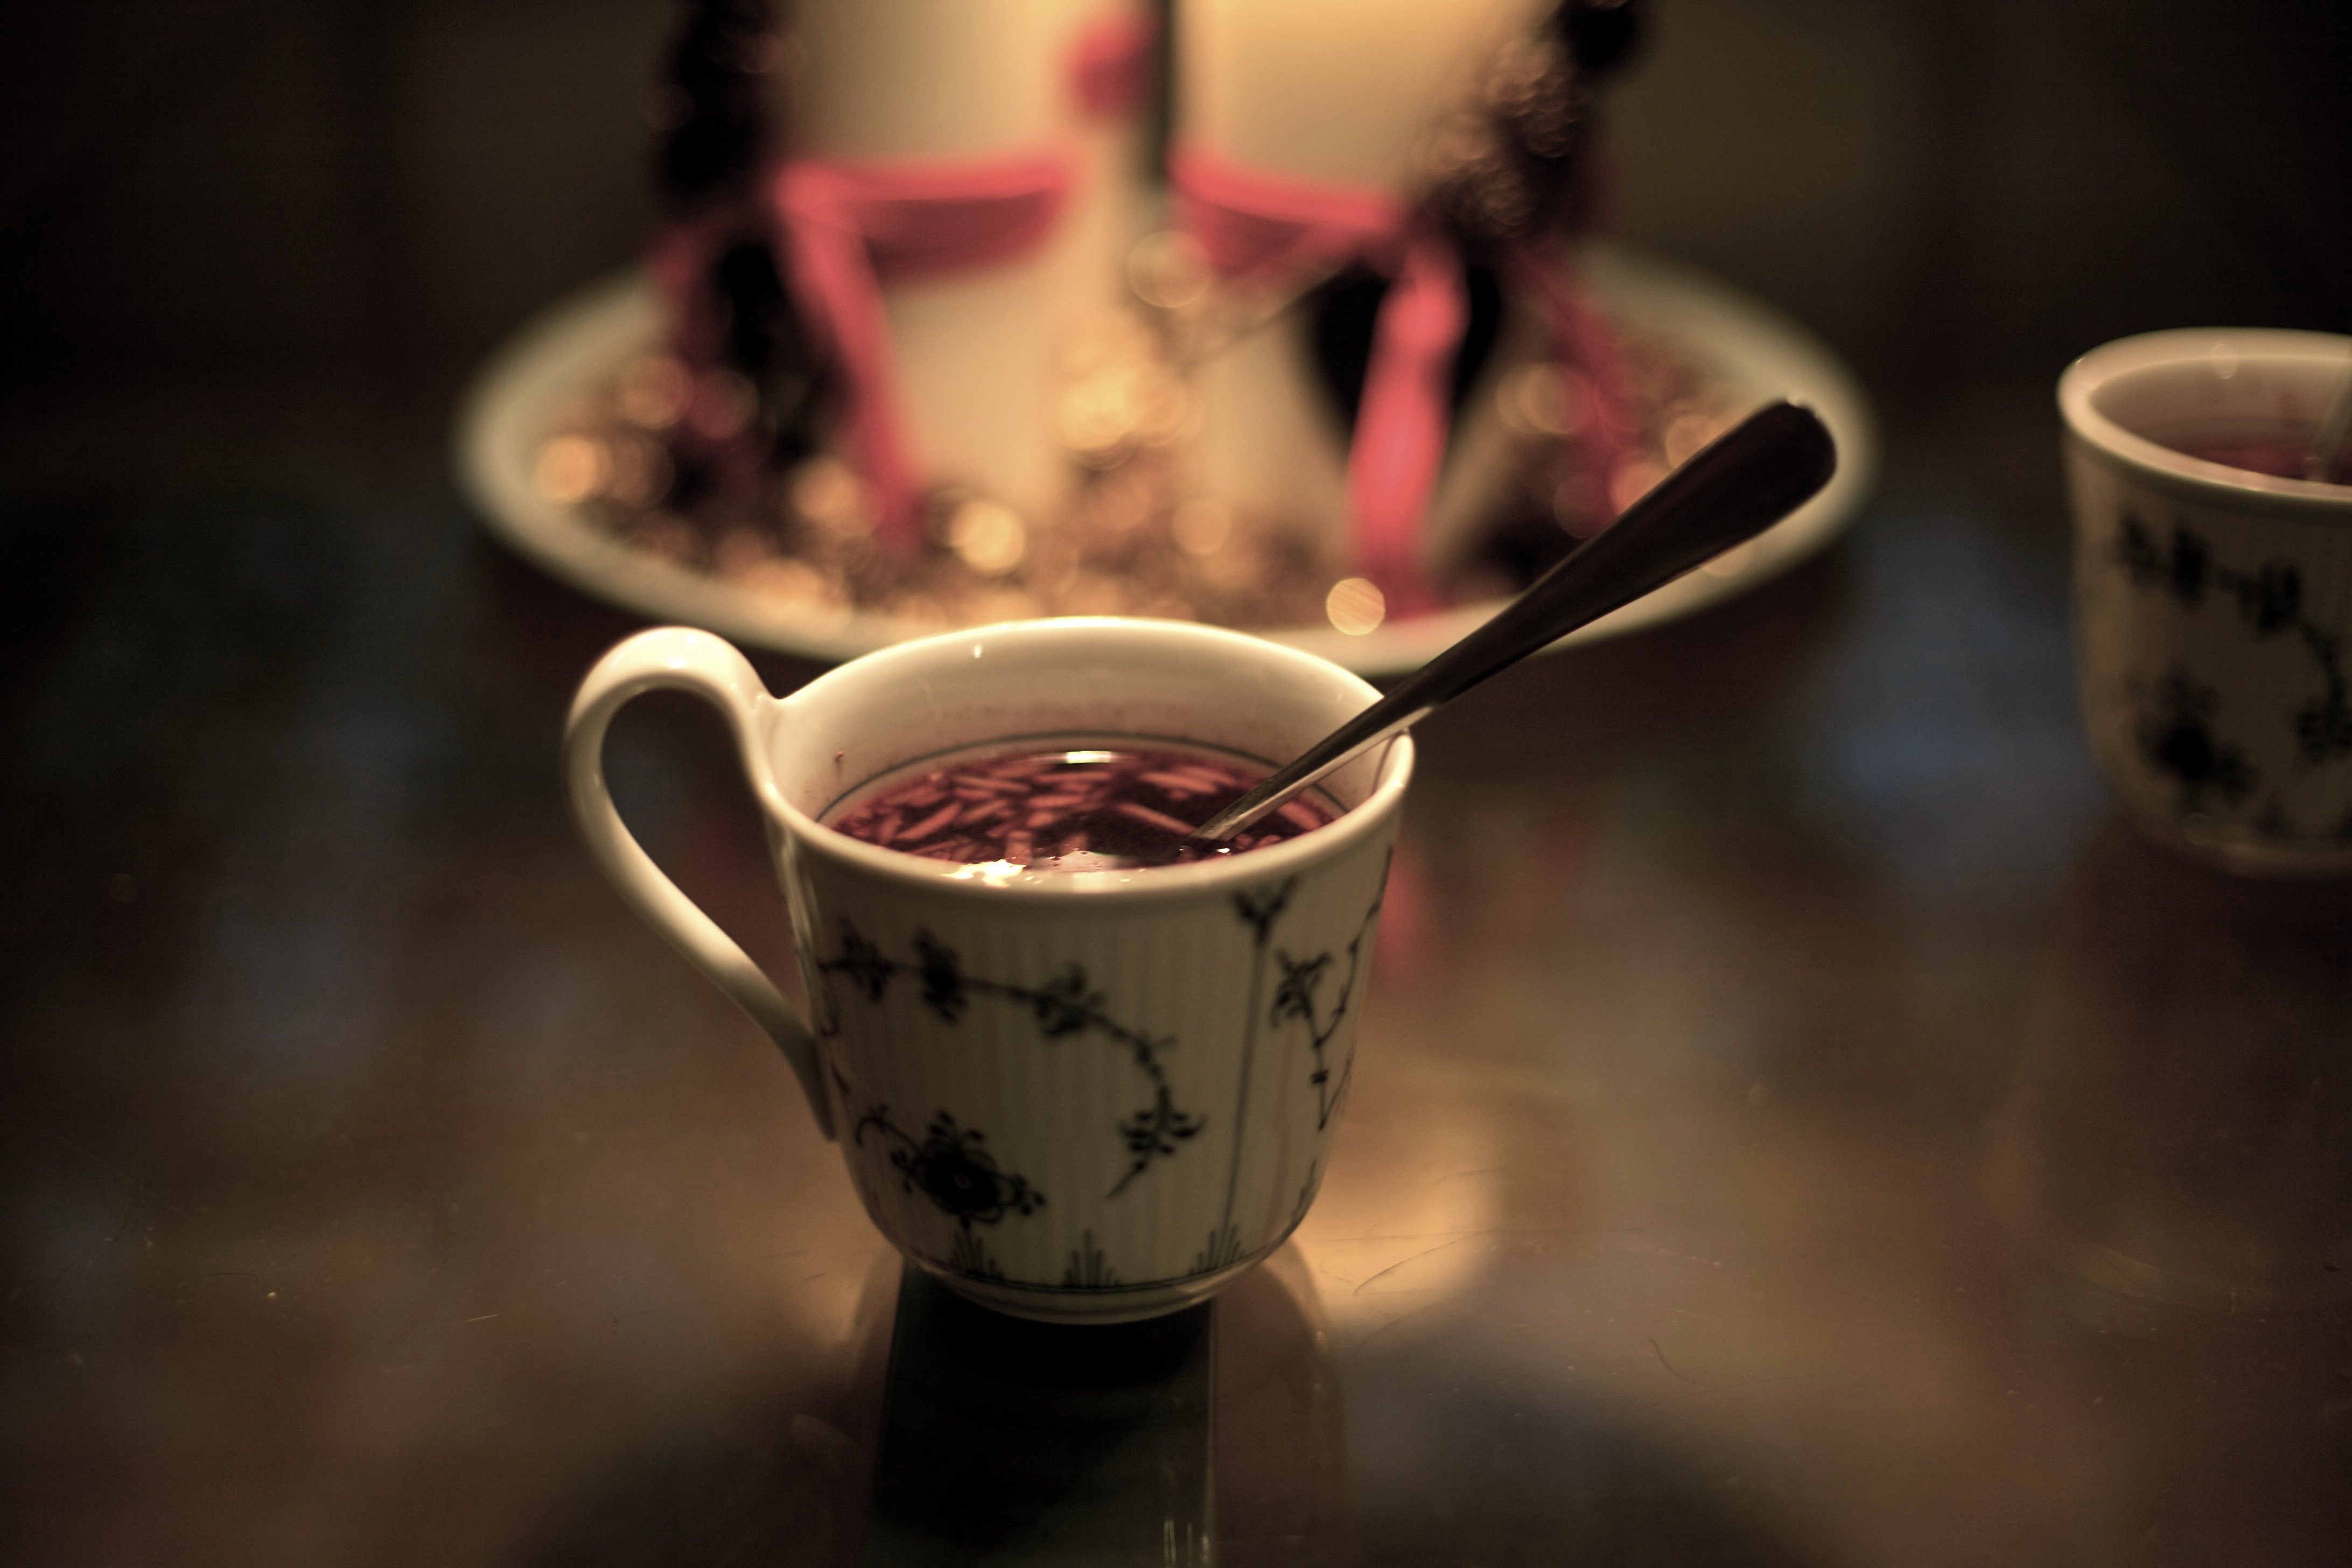 Gløgg is a spicy mulled wine with origins from the German